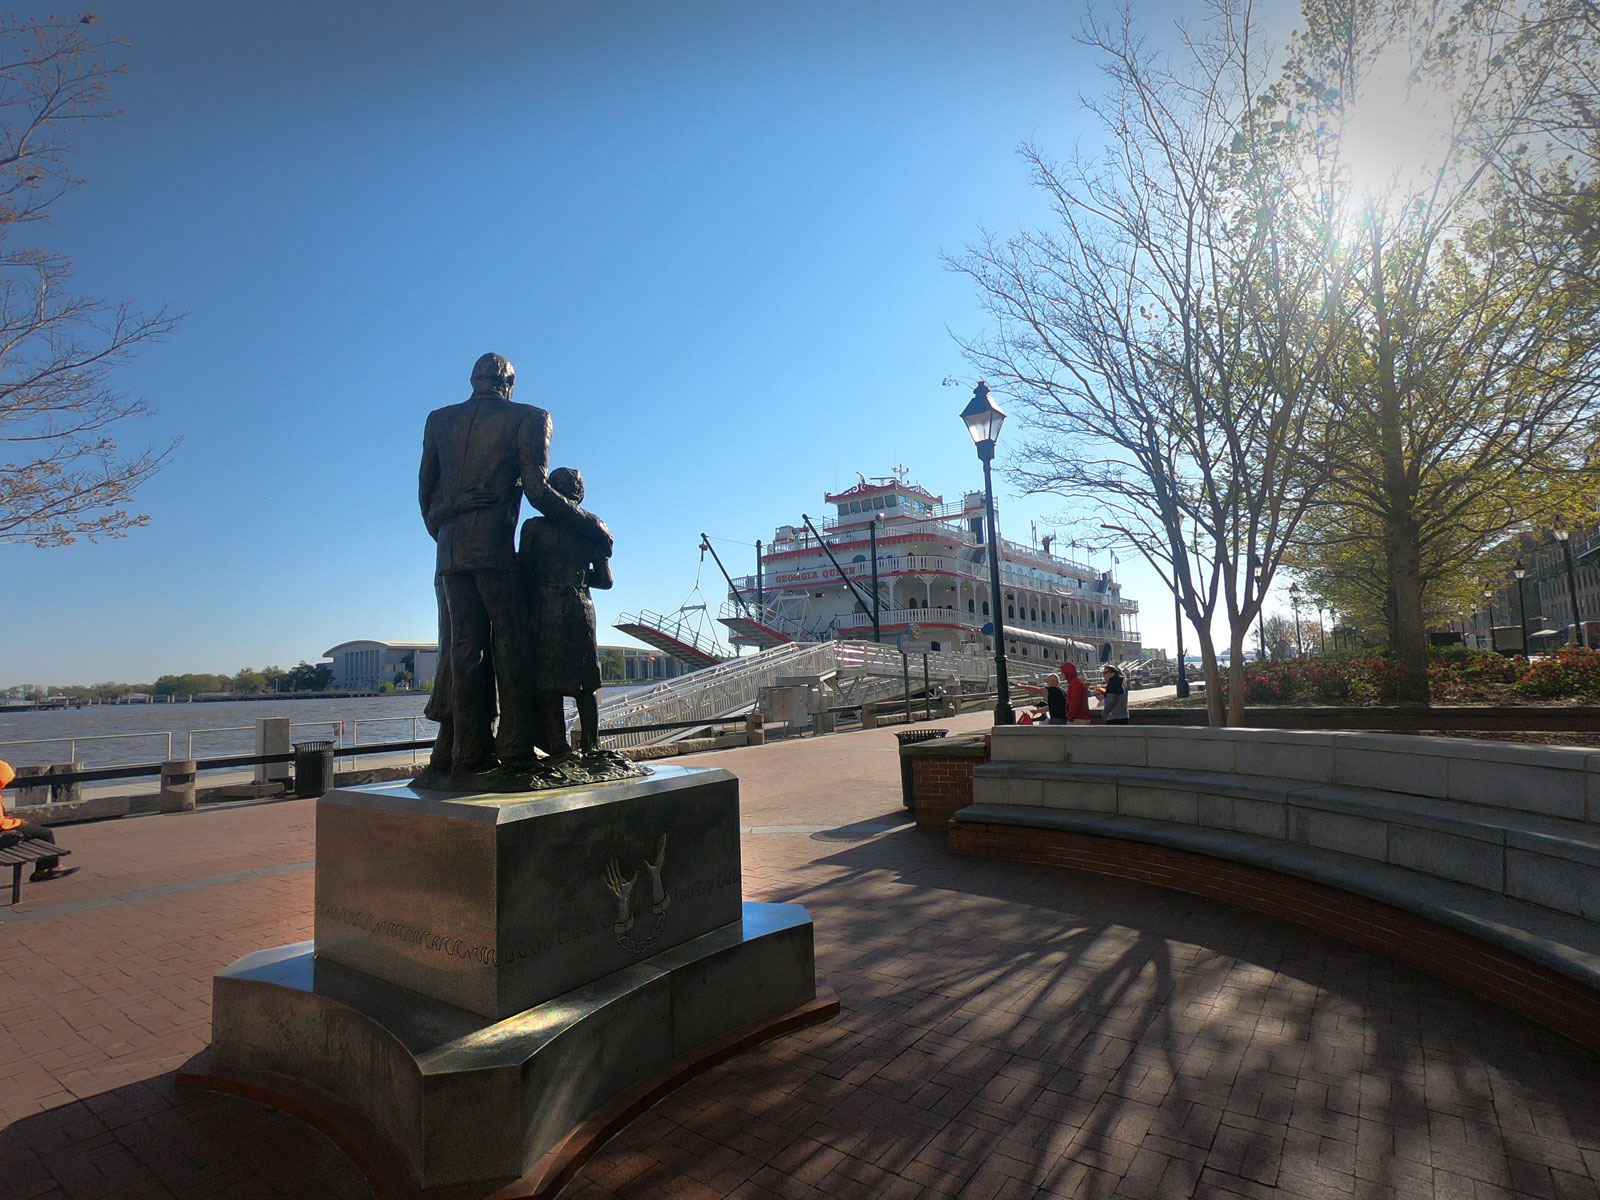 African American Monument of Slavery on Savannah riverfront in Georgia